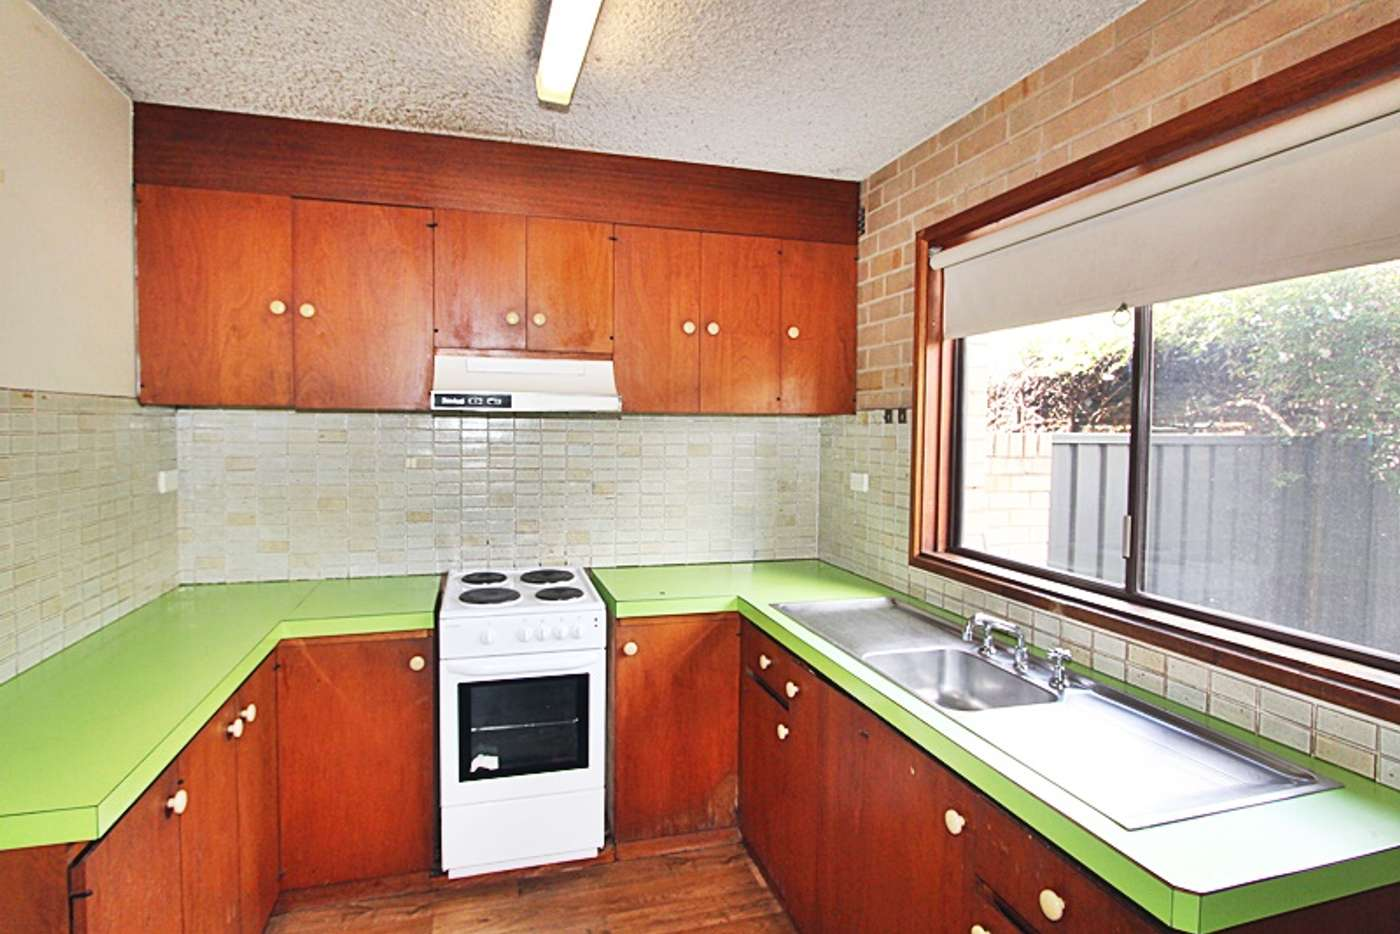 Main view of Homely unit listing, 4/241 Edward Street, Wagga Wagga NSW 2650